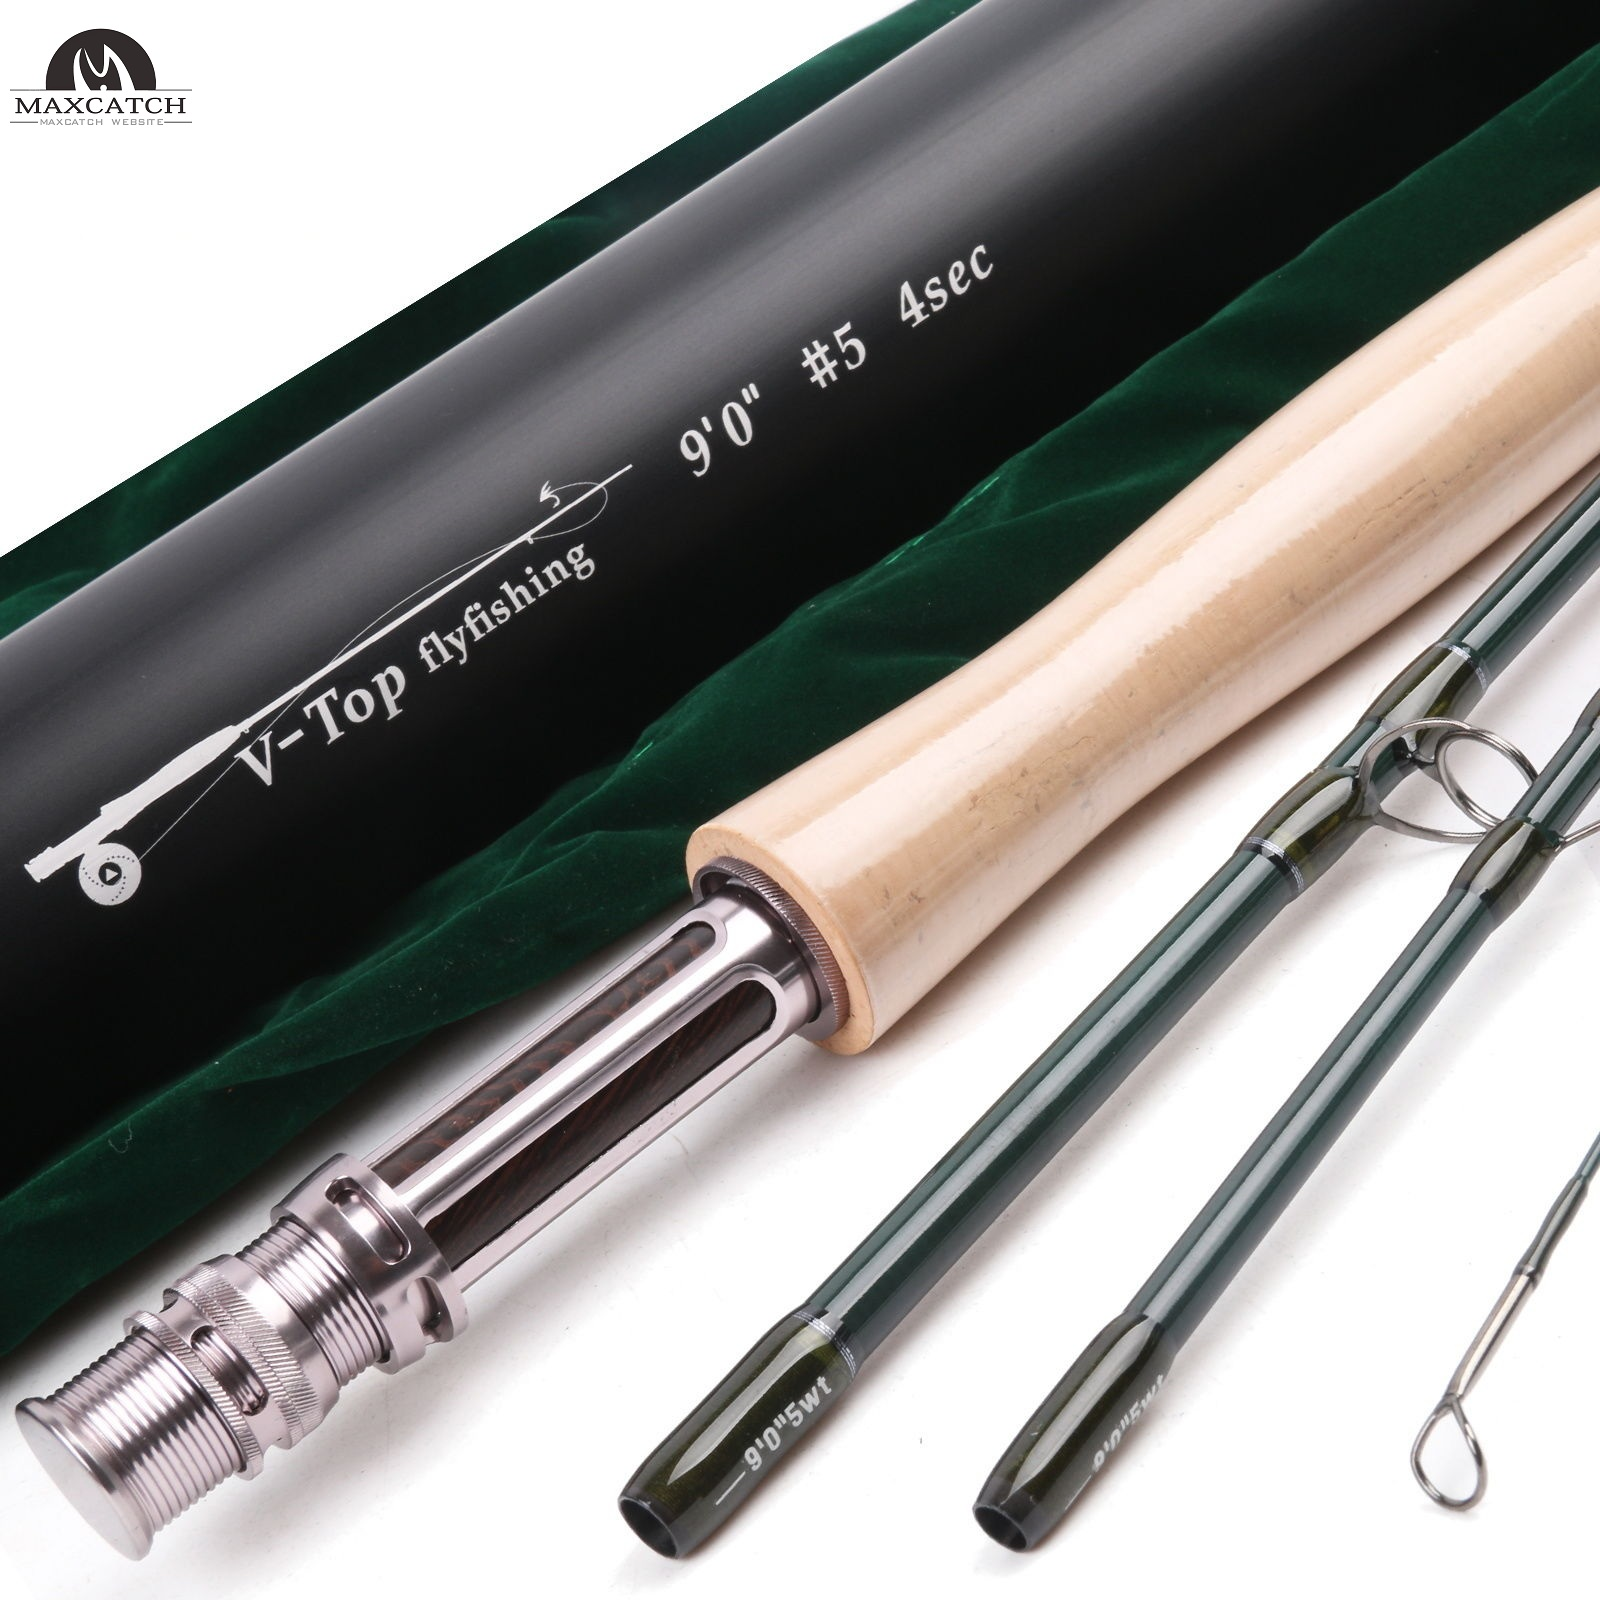 V-TOP 9FT 4Piece Fast Action Fly Fishing Rod (IM12) & Aluminum Tube<Lifetime Warranty>